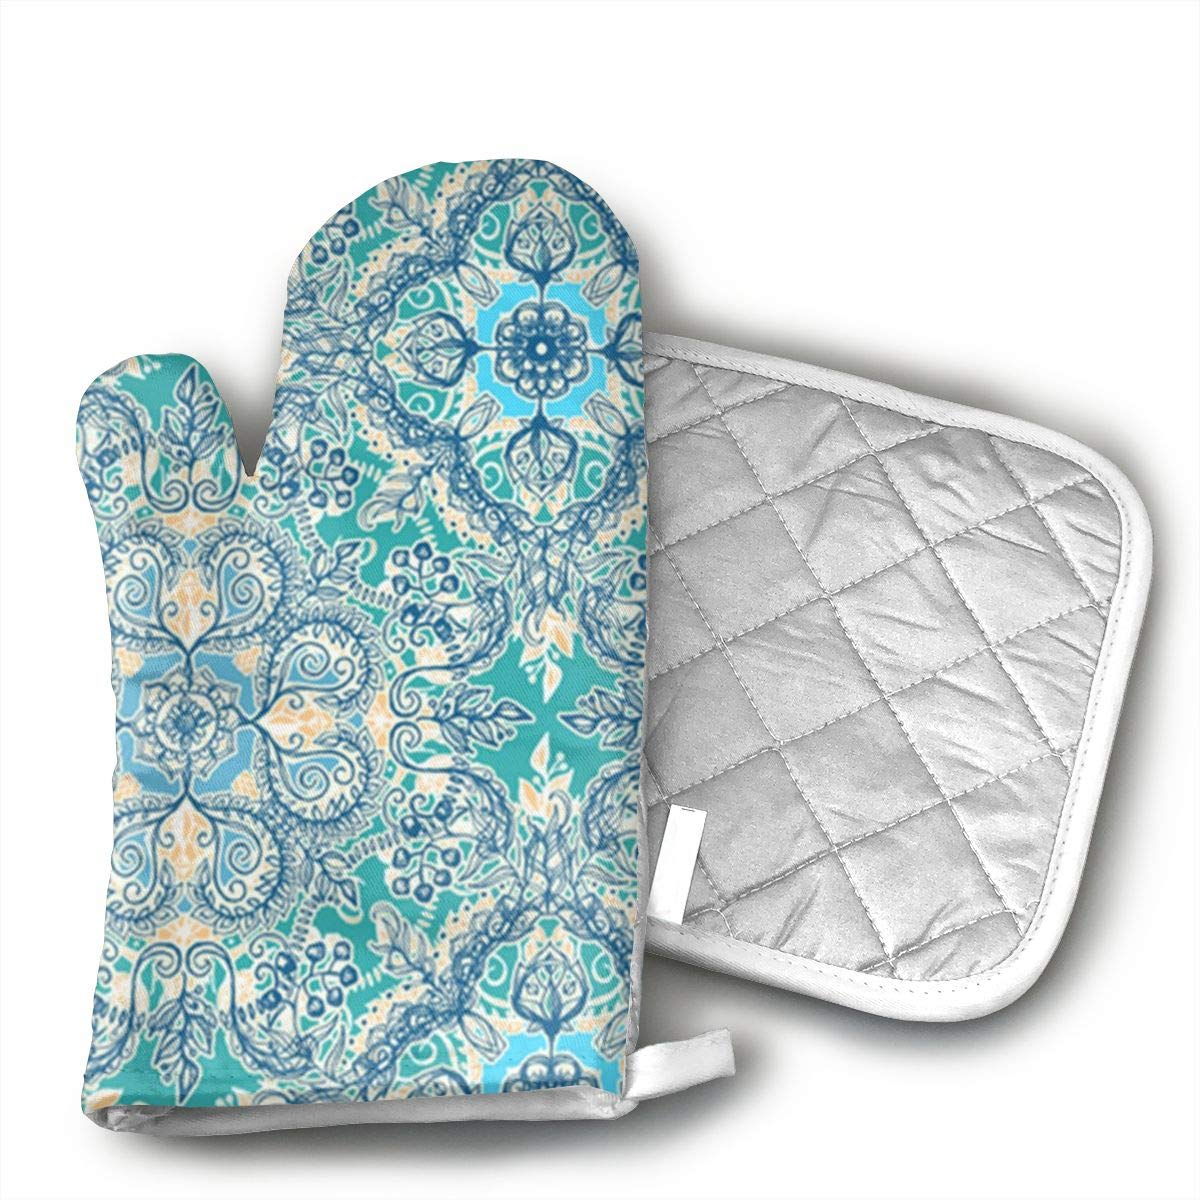 Gypsy Floral In Teal Oven Mitts And BBQ Gloves Pot Holders, Heat Resistant Mitts For Finger Hand Wrist Protection With Inner Lining, Kitchen Gloves For Grilling Machine Baking Grilling With Non-Slip